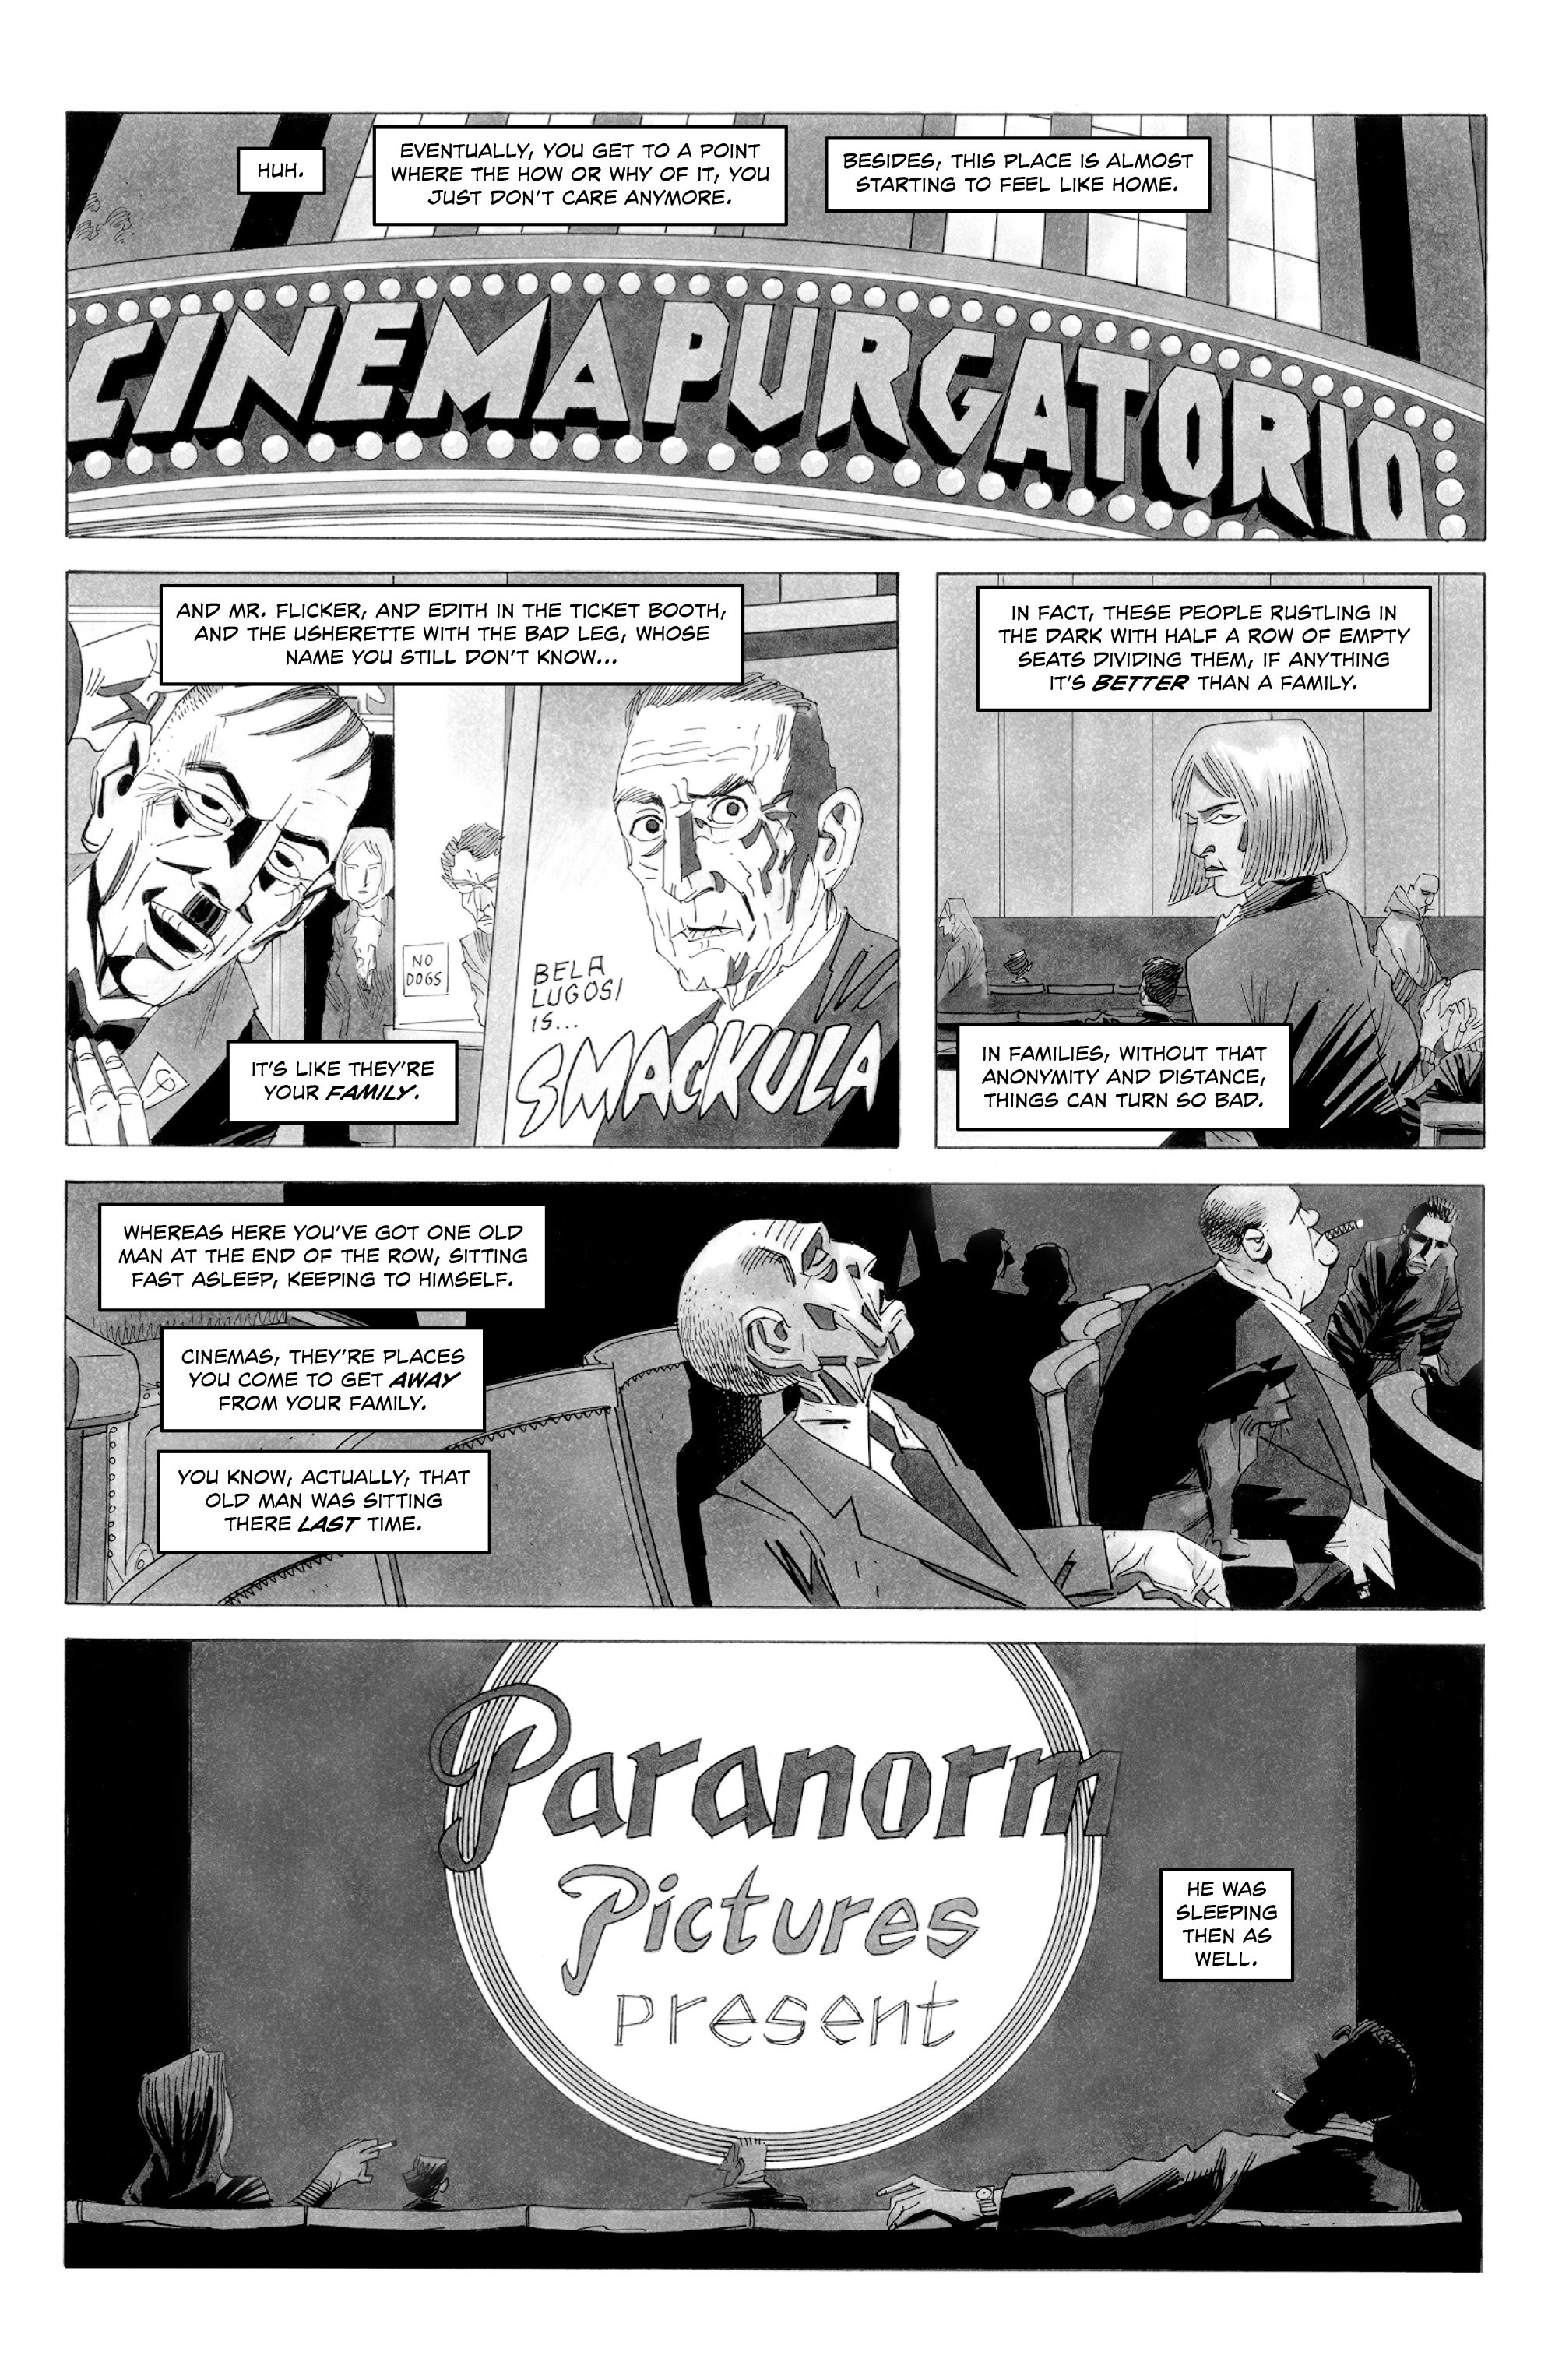 Alan Moore S Cinema Purgatorio Issue 7   Read Alan Moore S Cinema Purgatorio  Issue 7 comic online in high quality. Read Full Comic online for free -  Read comics online in high quality .